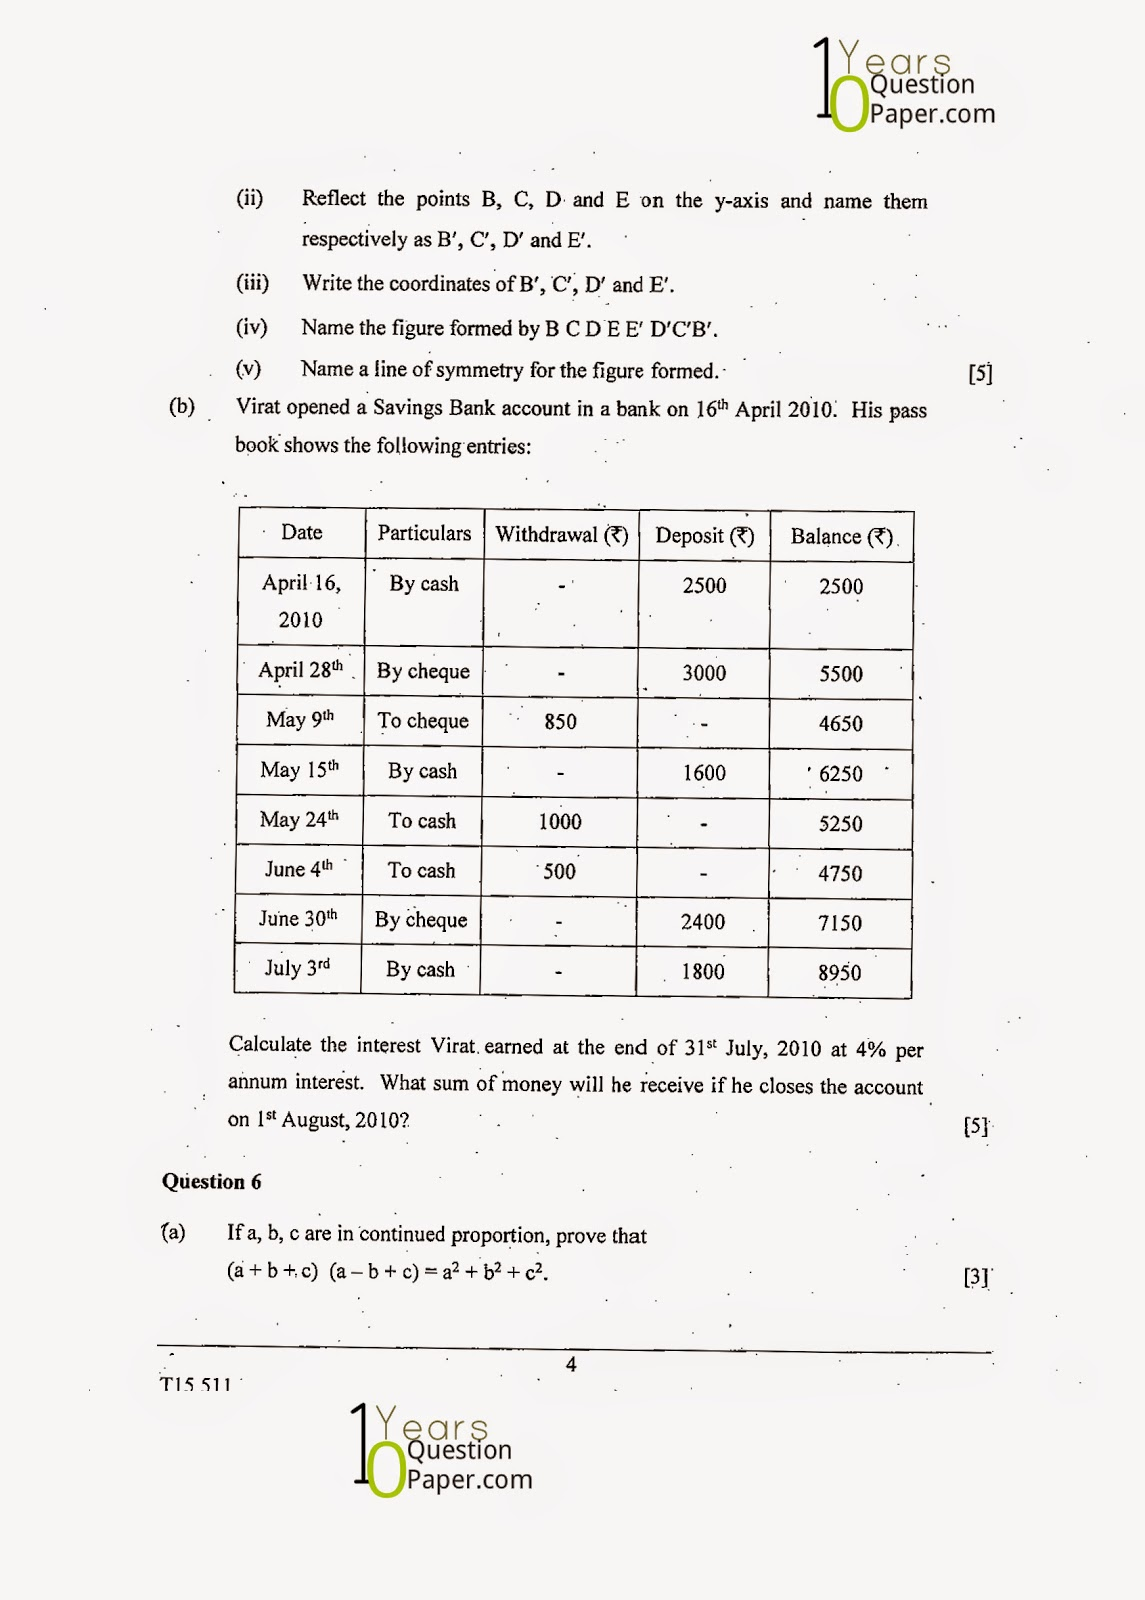 Icse 2015 mathematics class x 10 years question paper icse 2015 class 10th mathematics question paper malvernweather